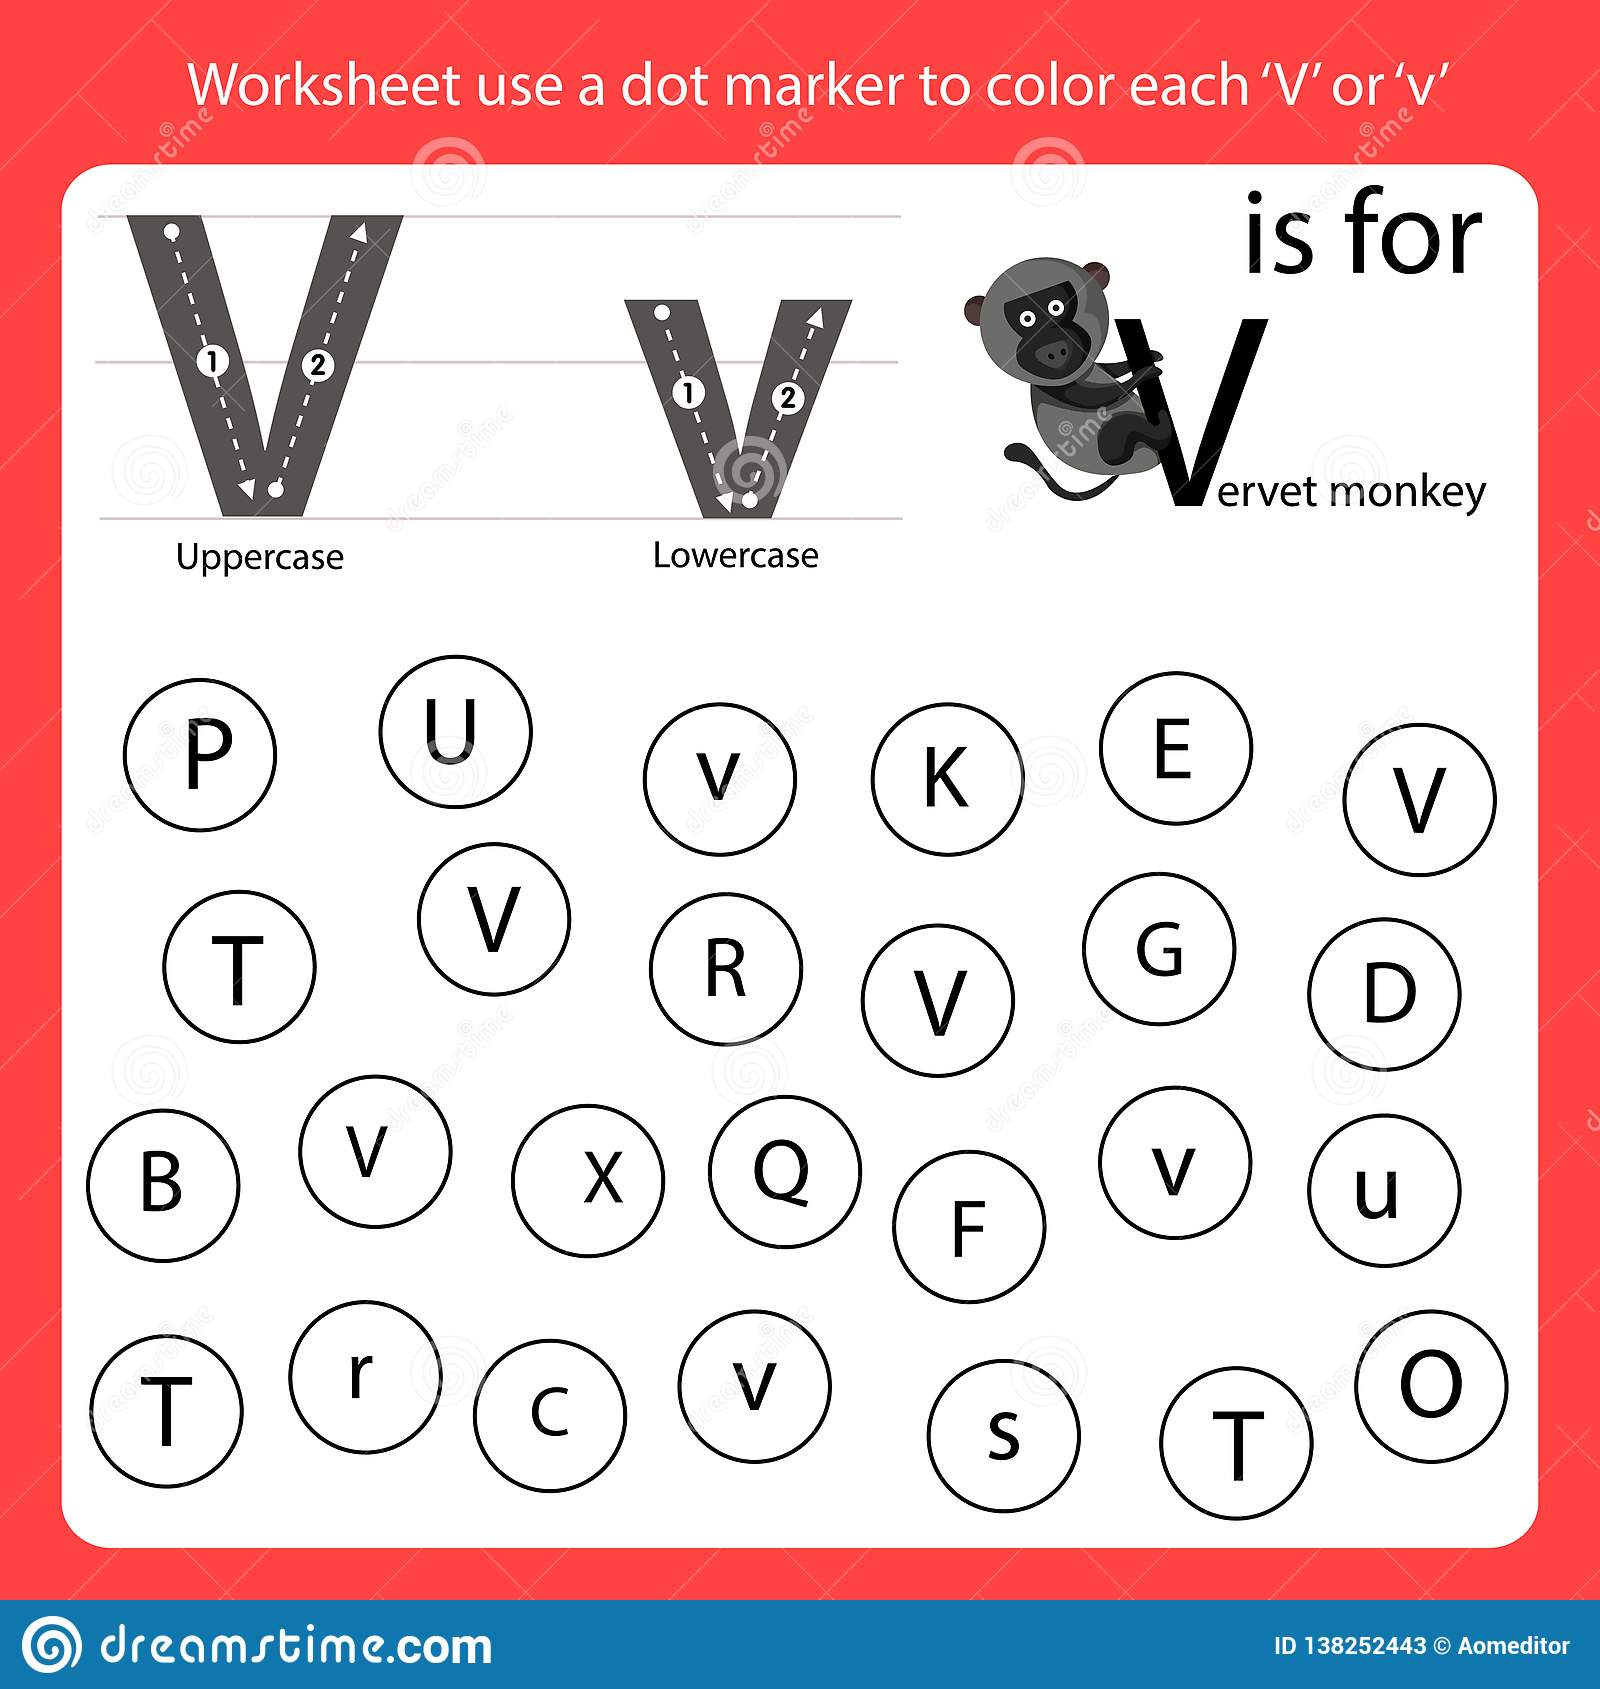 Find The Letter Worksheet Use A Dot Marker To Color Each V